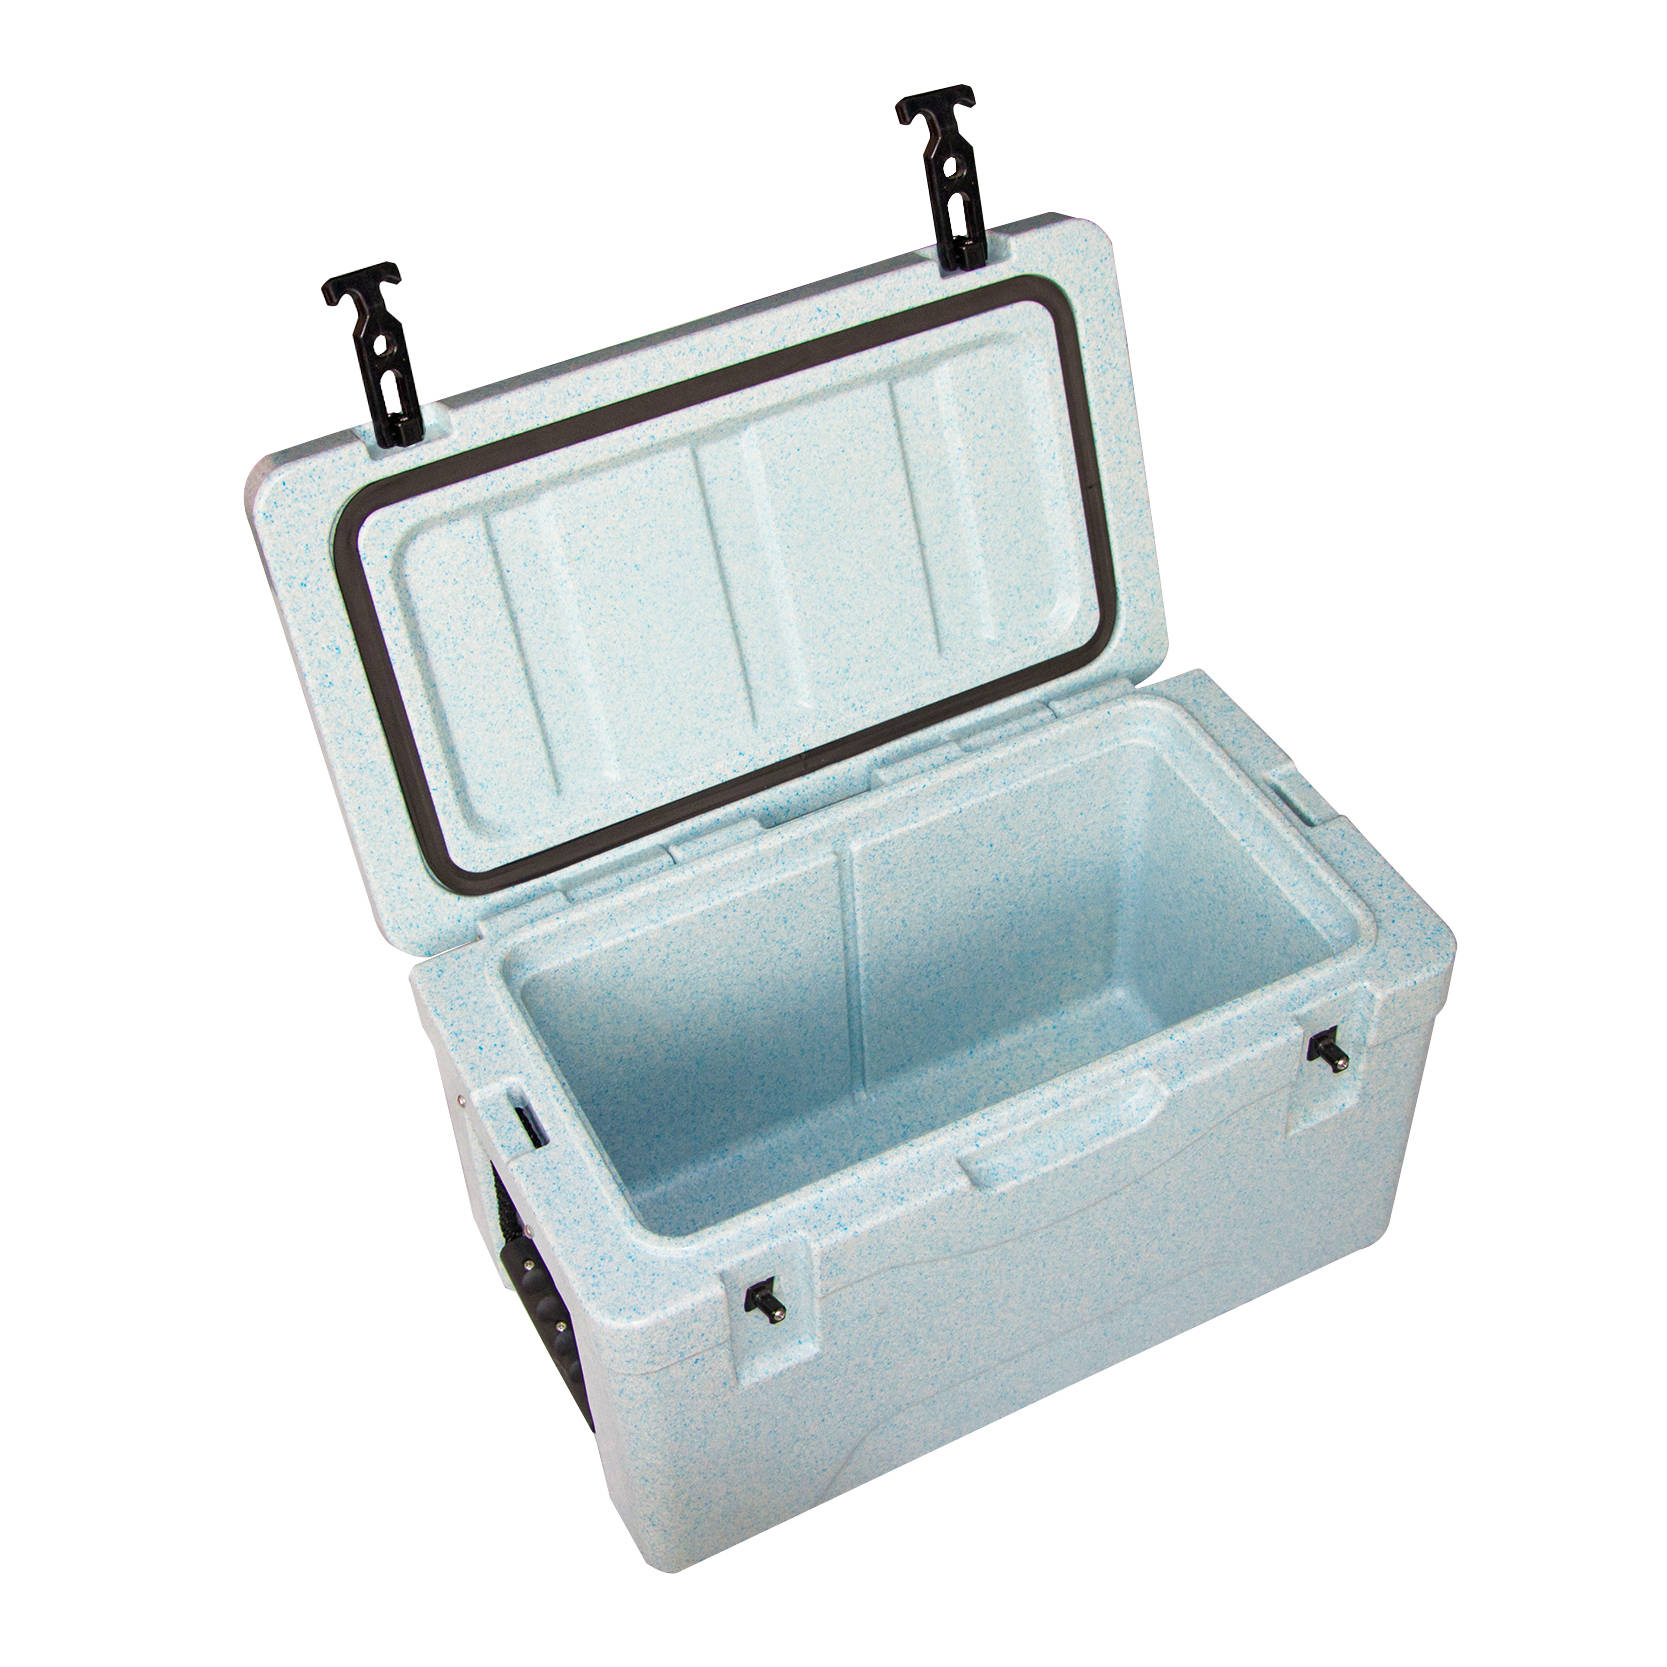 rotationally molded cooler box insulated cases